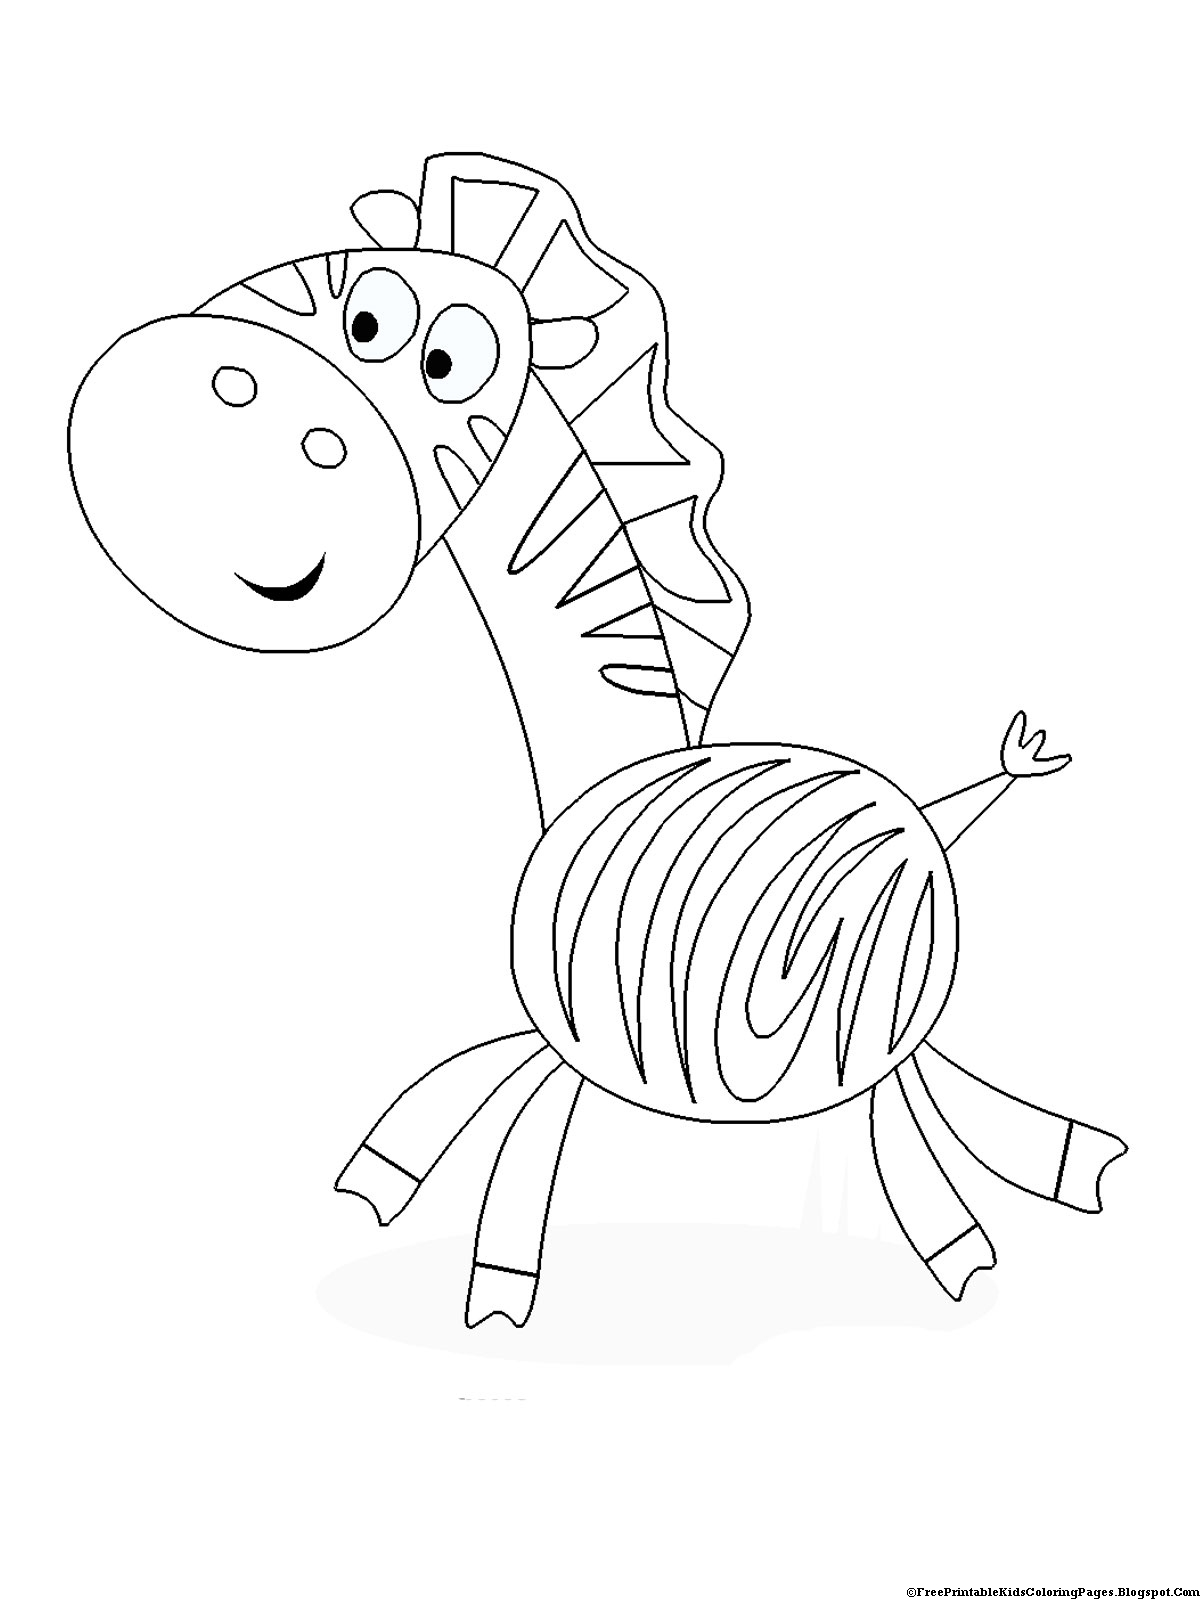 coloring pages printable free free printable advanced coloring pages coloring home pages printable free coloring